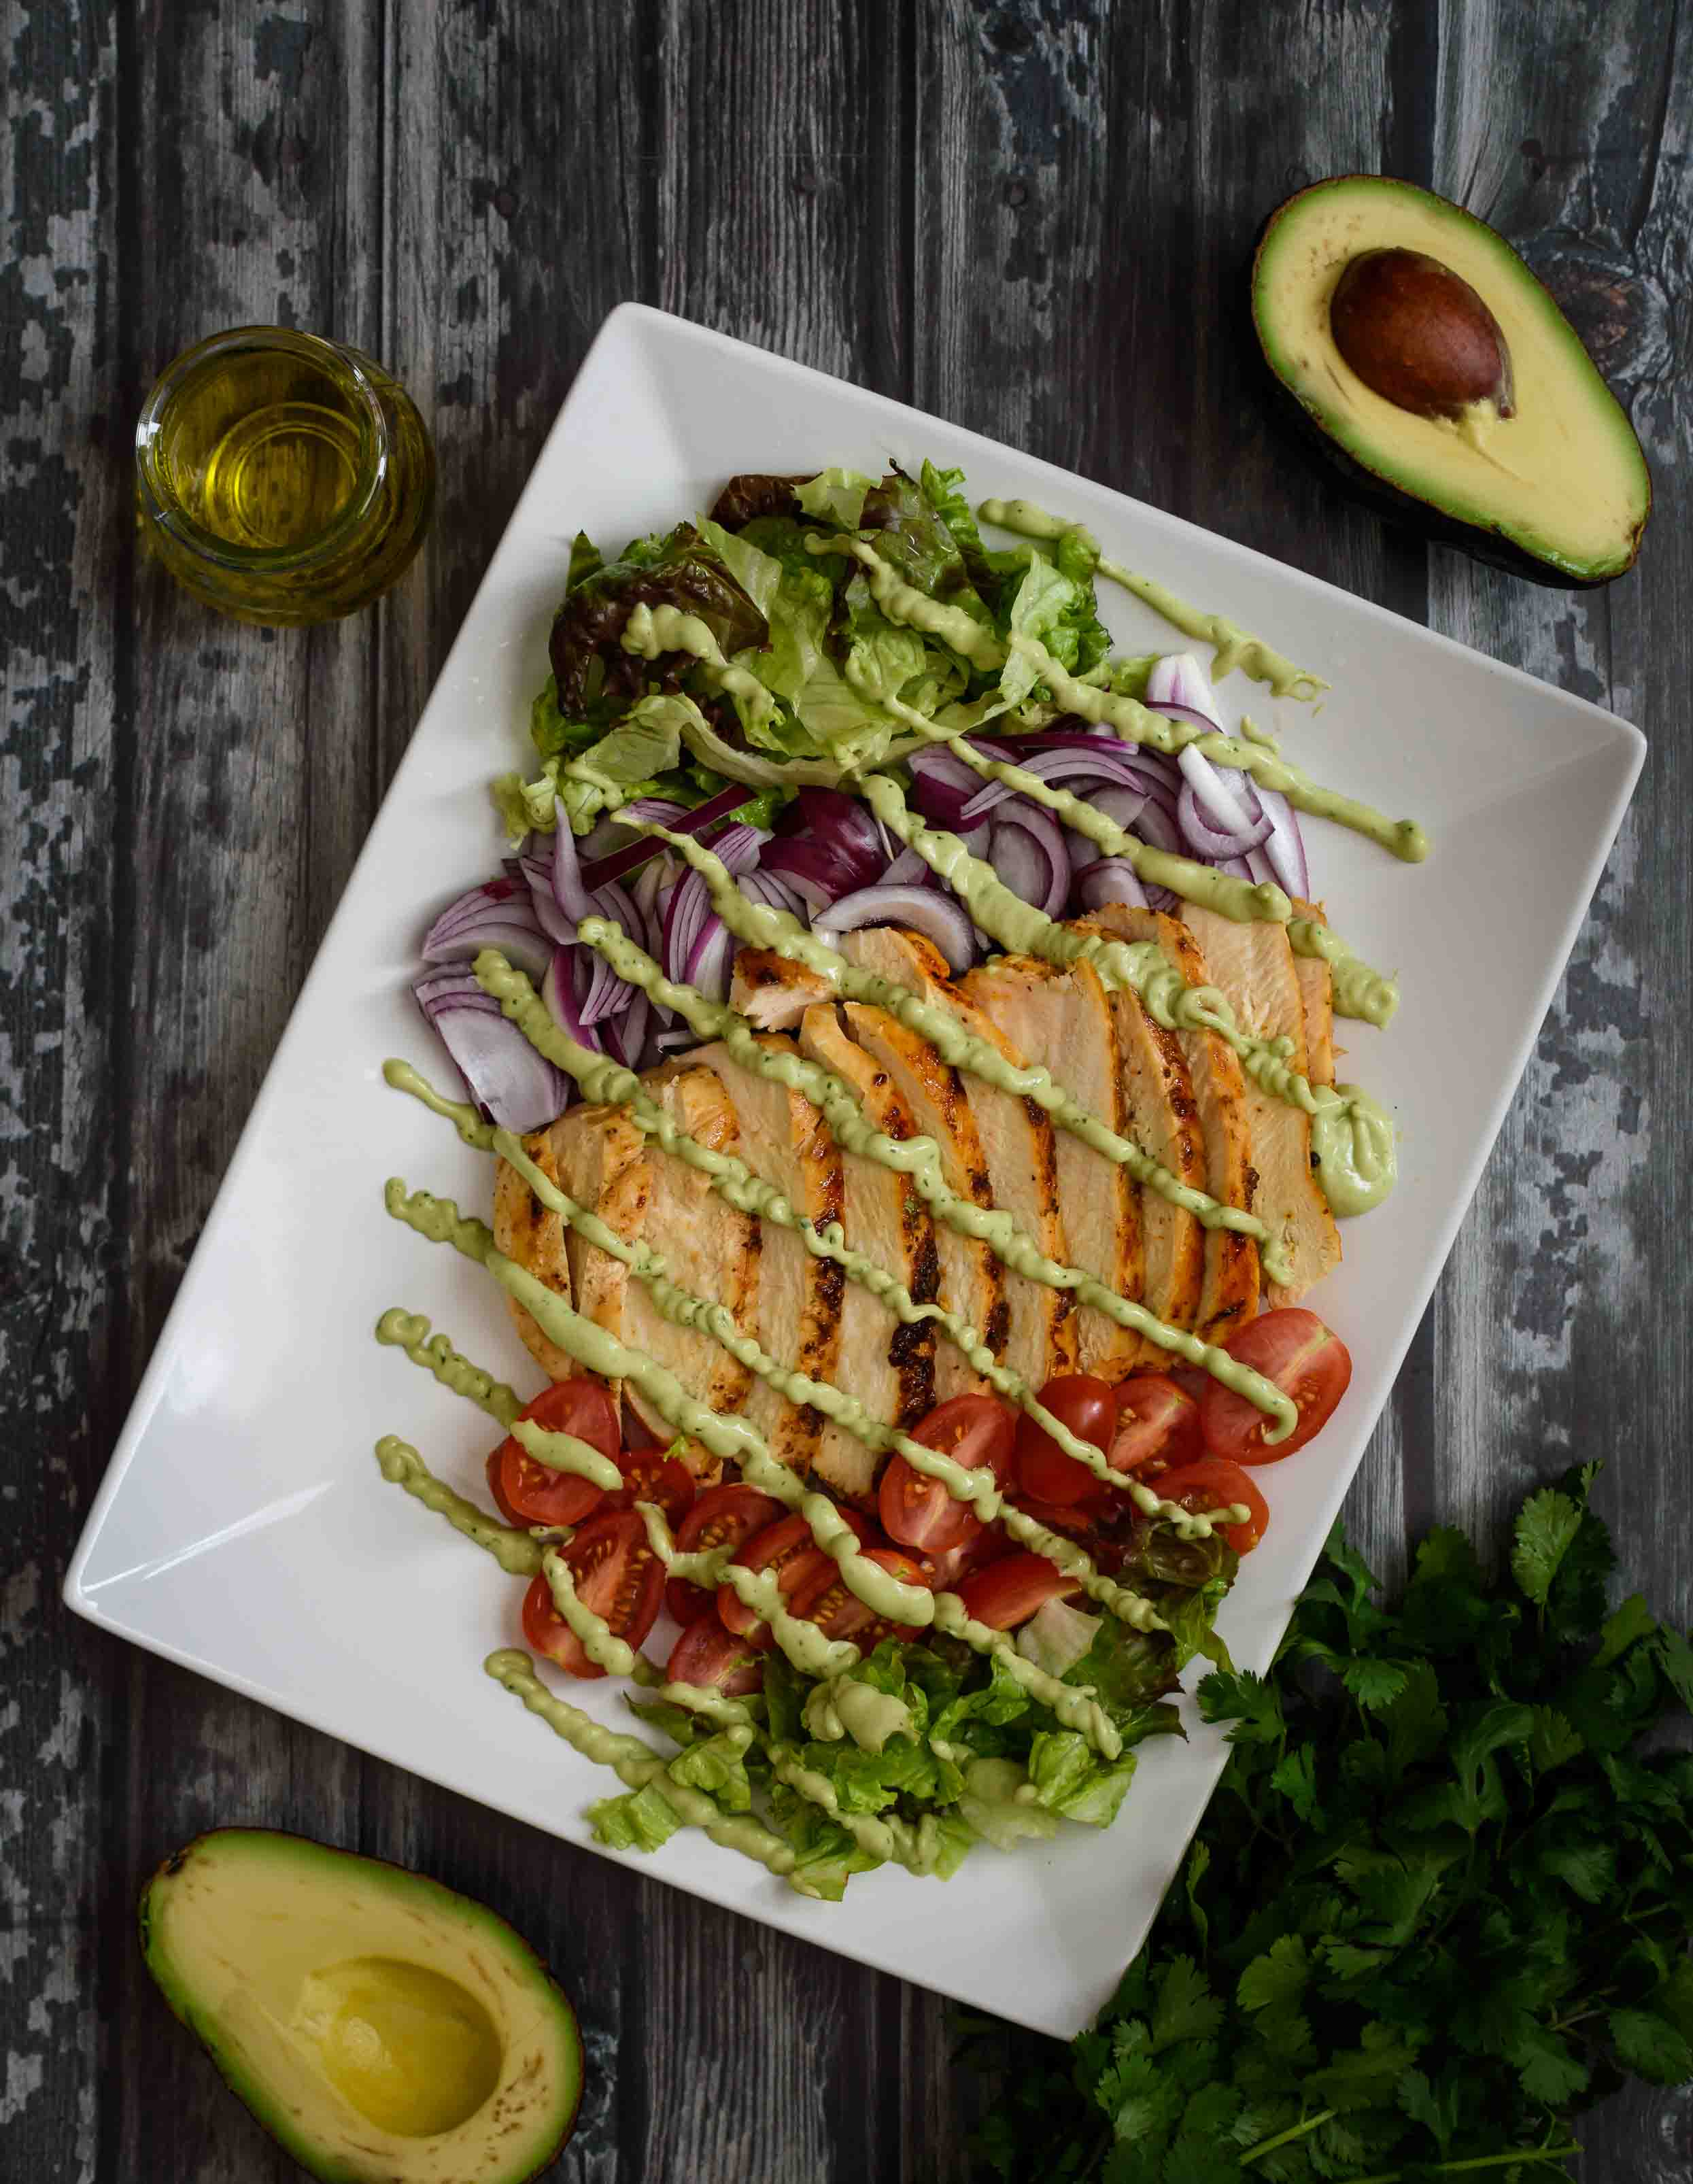 Pan Seared Chicken Salad with Creamy Avocado Dressing- Pepper Delight #pepperdelightblog #recipe #salad #chickensalad #summersalad #healthy #cleaneating #dinner #lunch #july4threcipes #avocadodressing